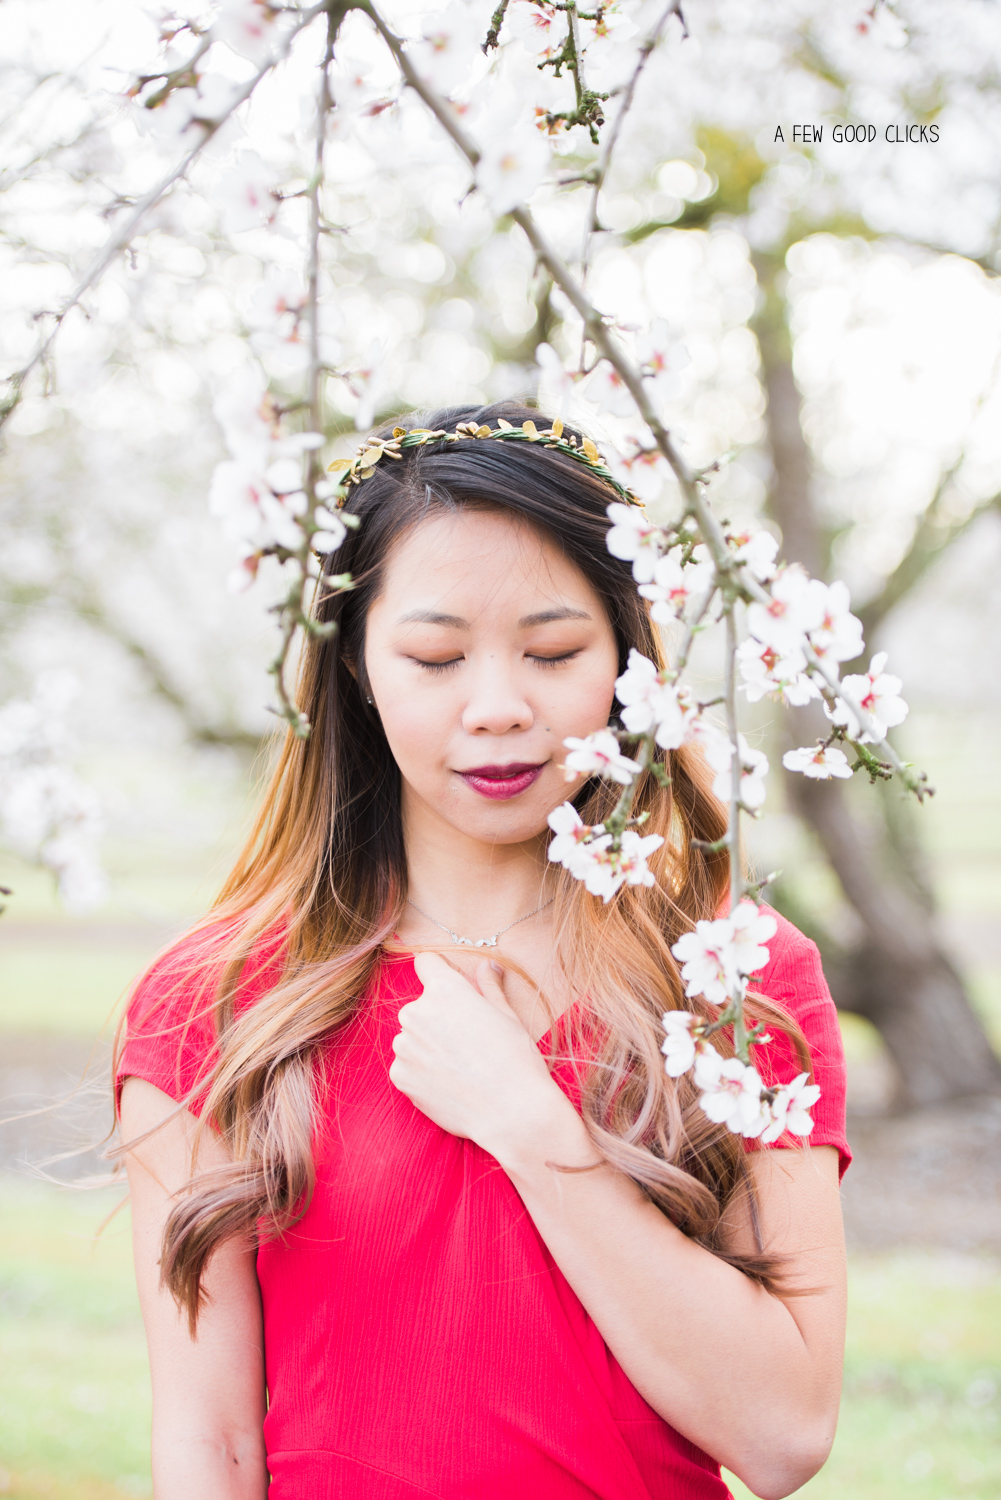 almond-blossom-lifestyle-portrait-photography-by-afewgoodclicks-net-122.jpg